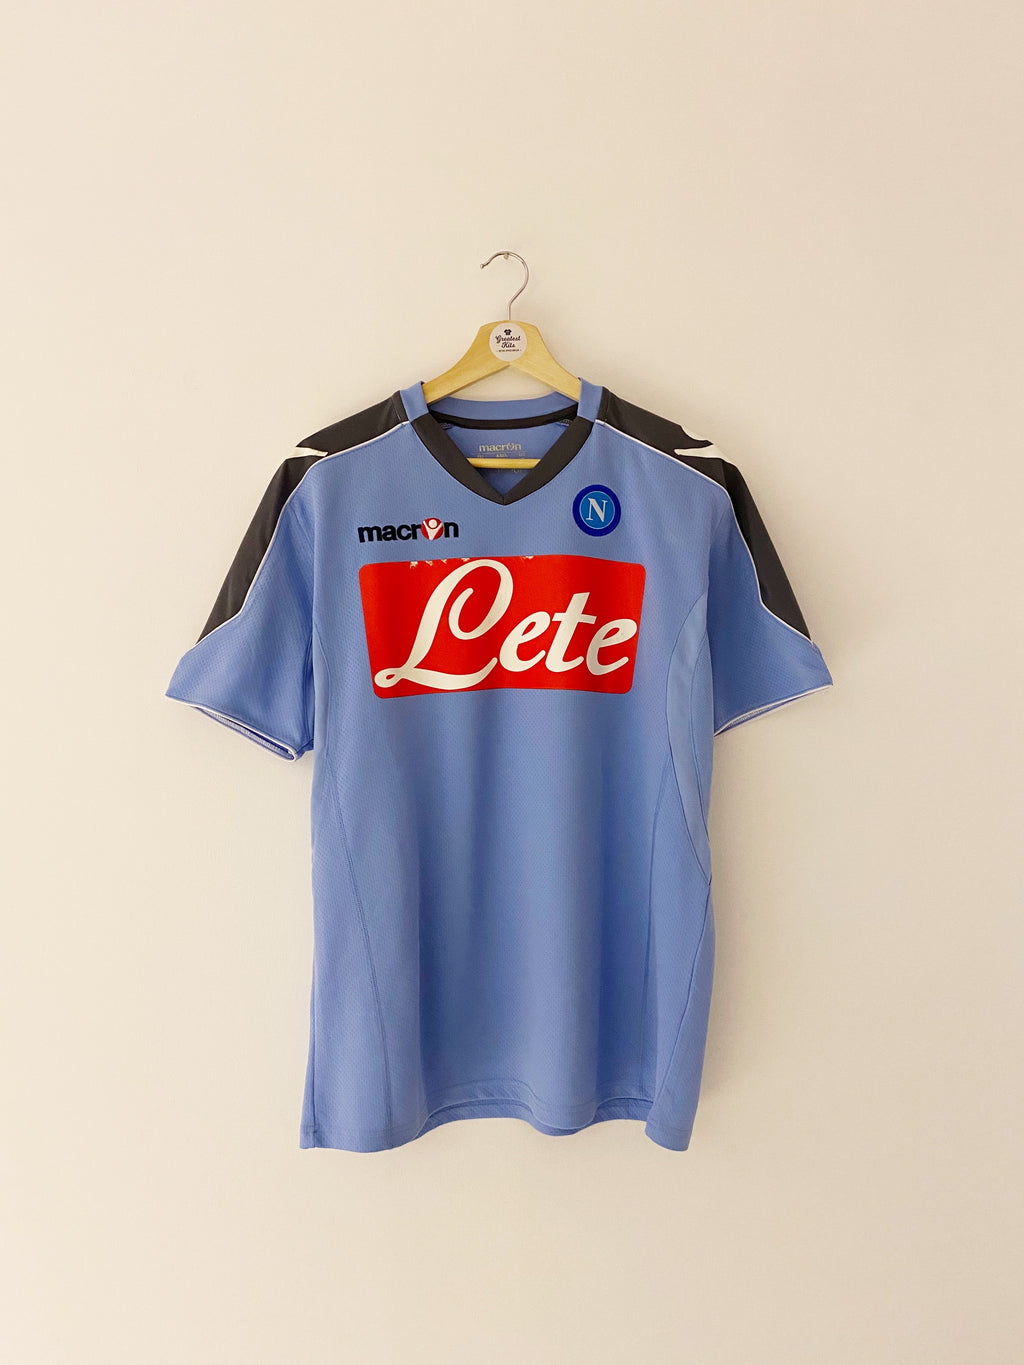 2010/11 Napoli Training Shirt (M) 7.5/10